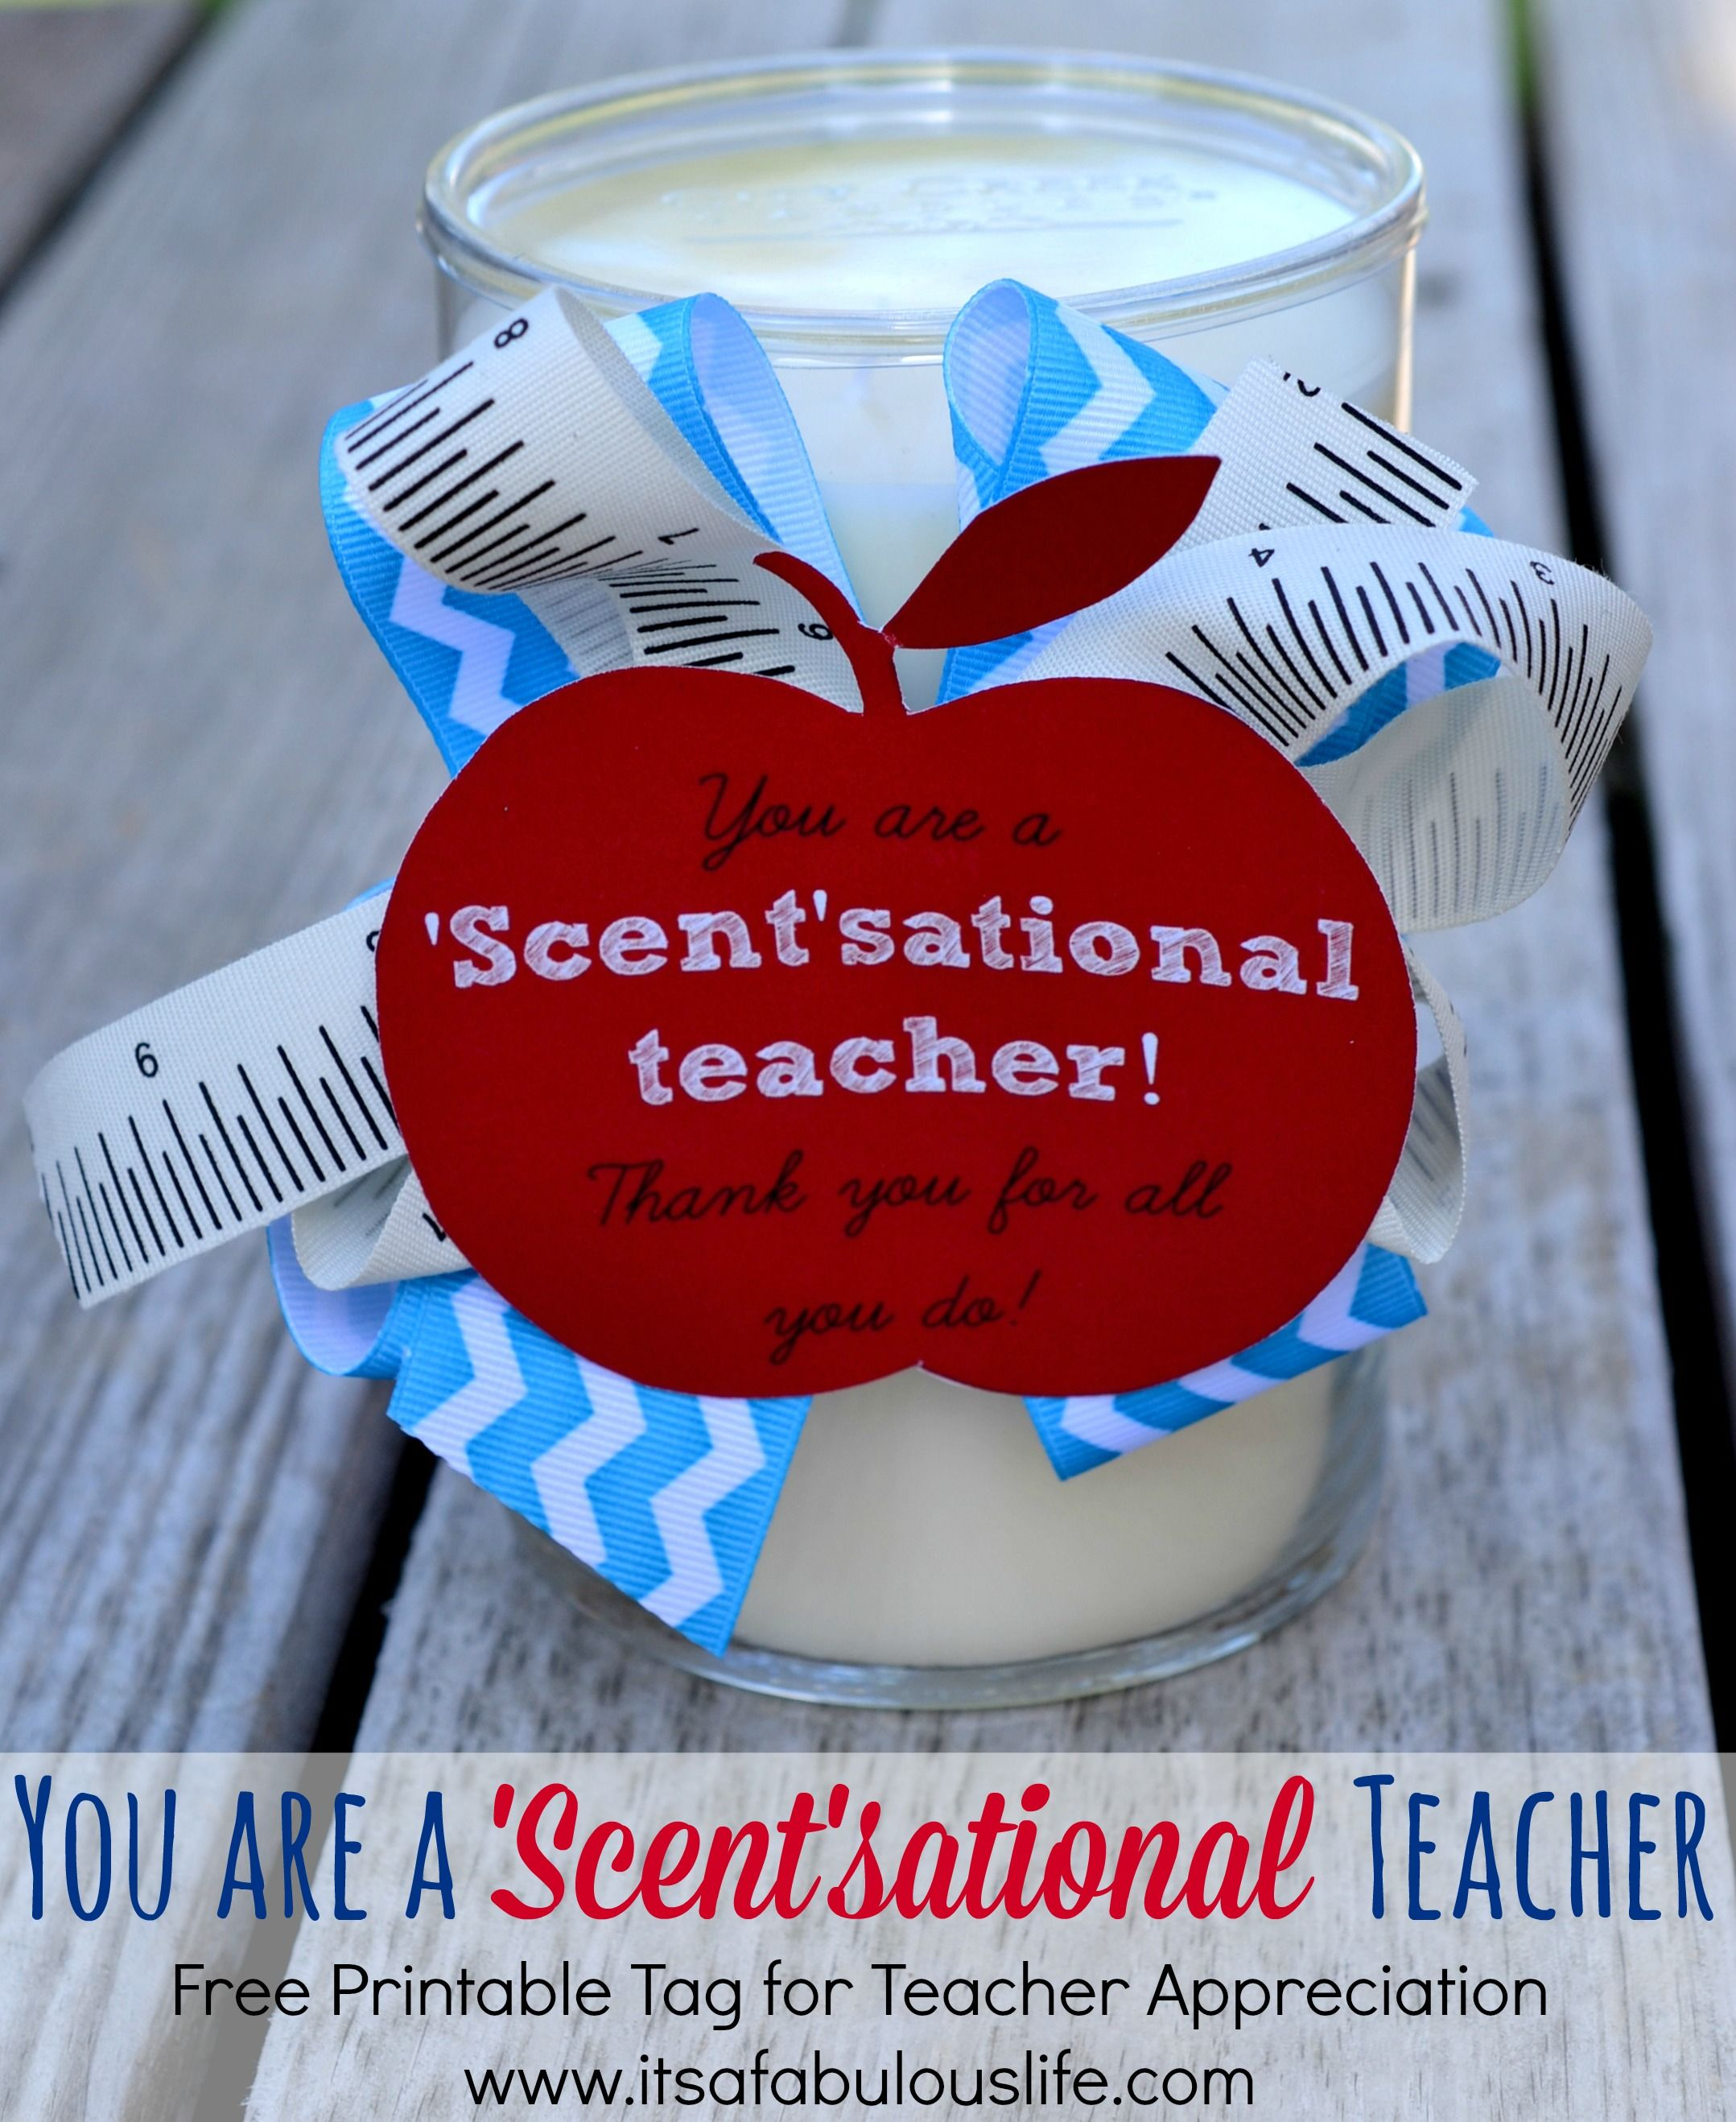 Teacher Reciation Gift Idea Candles Candle Warmers Plus A Free Printable Tag It S Fabulous Life